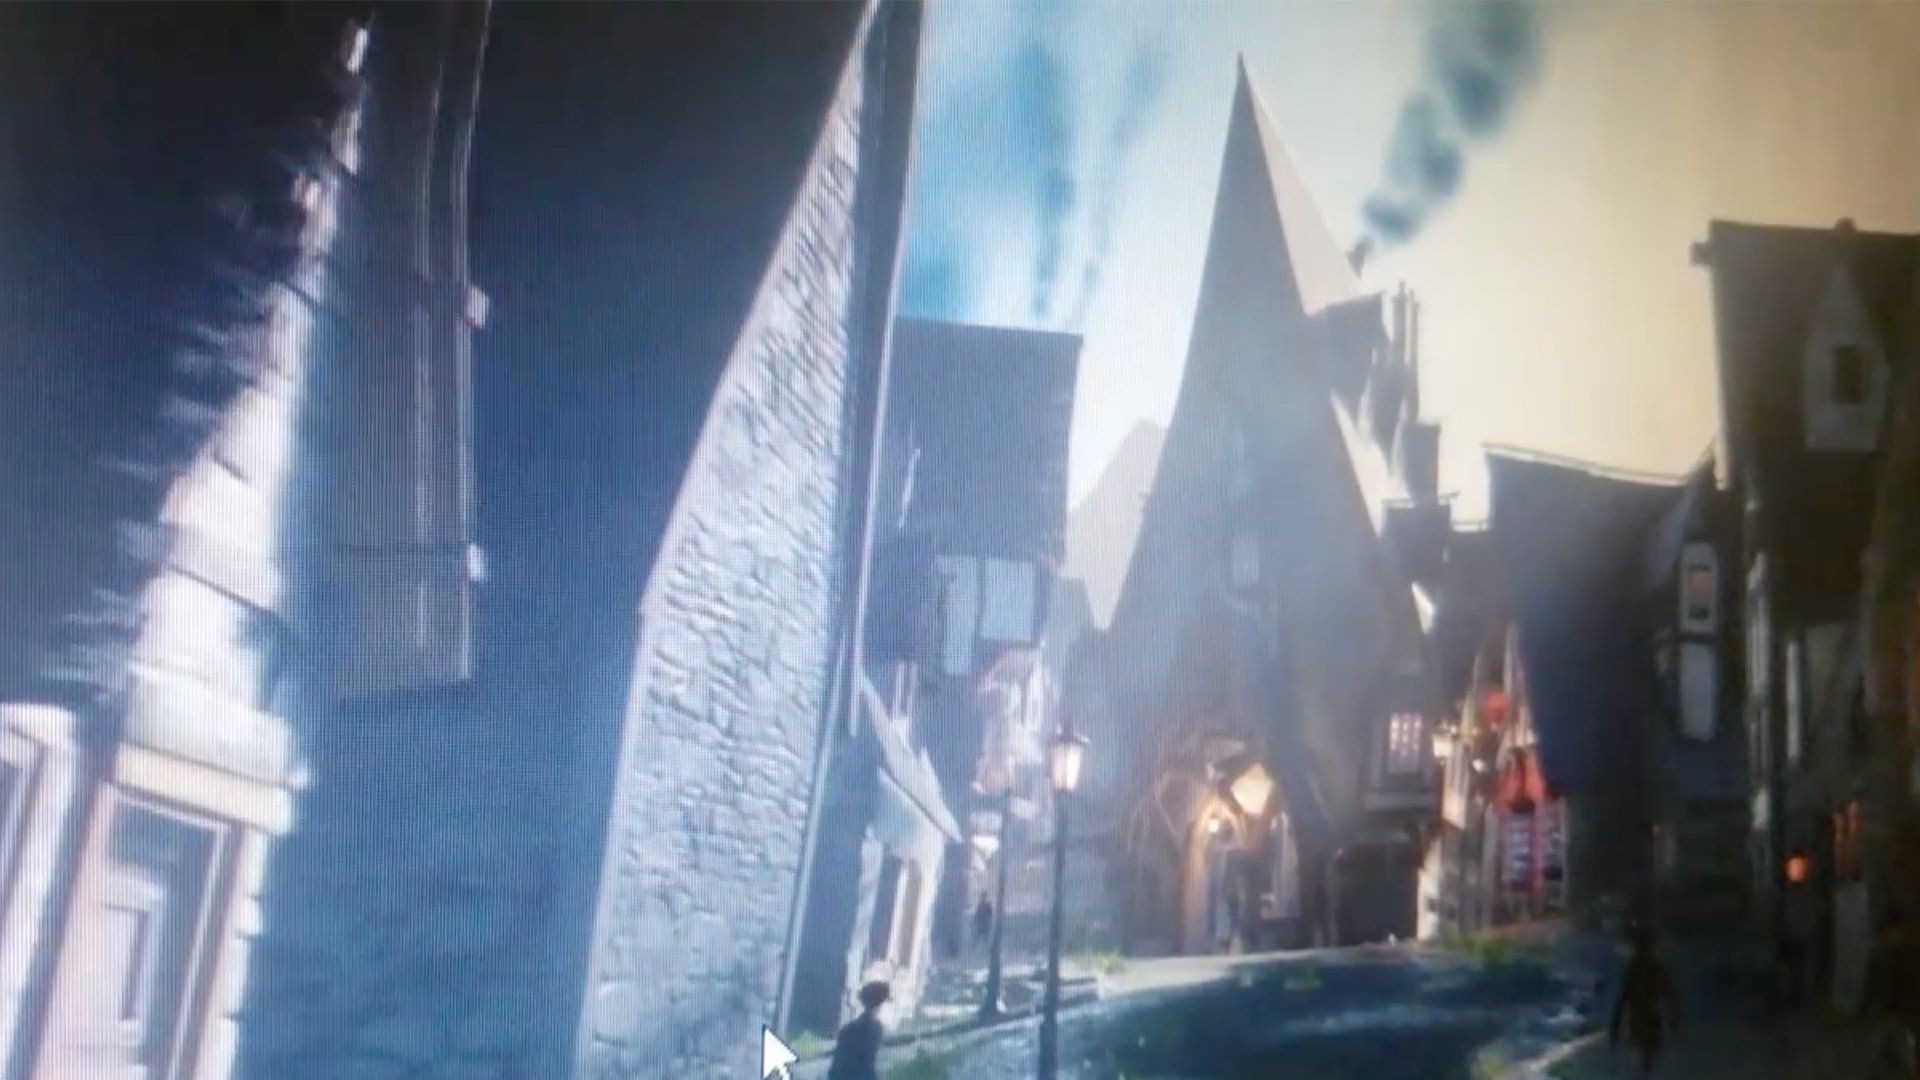 Harry Potter Rpg Leaks Showcasing Character Creator And Combat Elements Harry Potter Rpg Character Creator Rpg